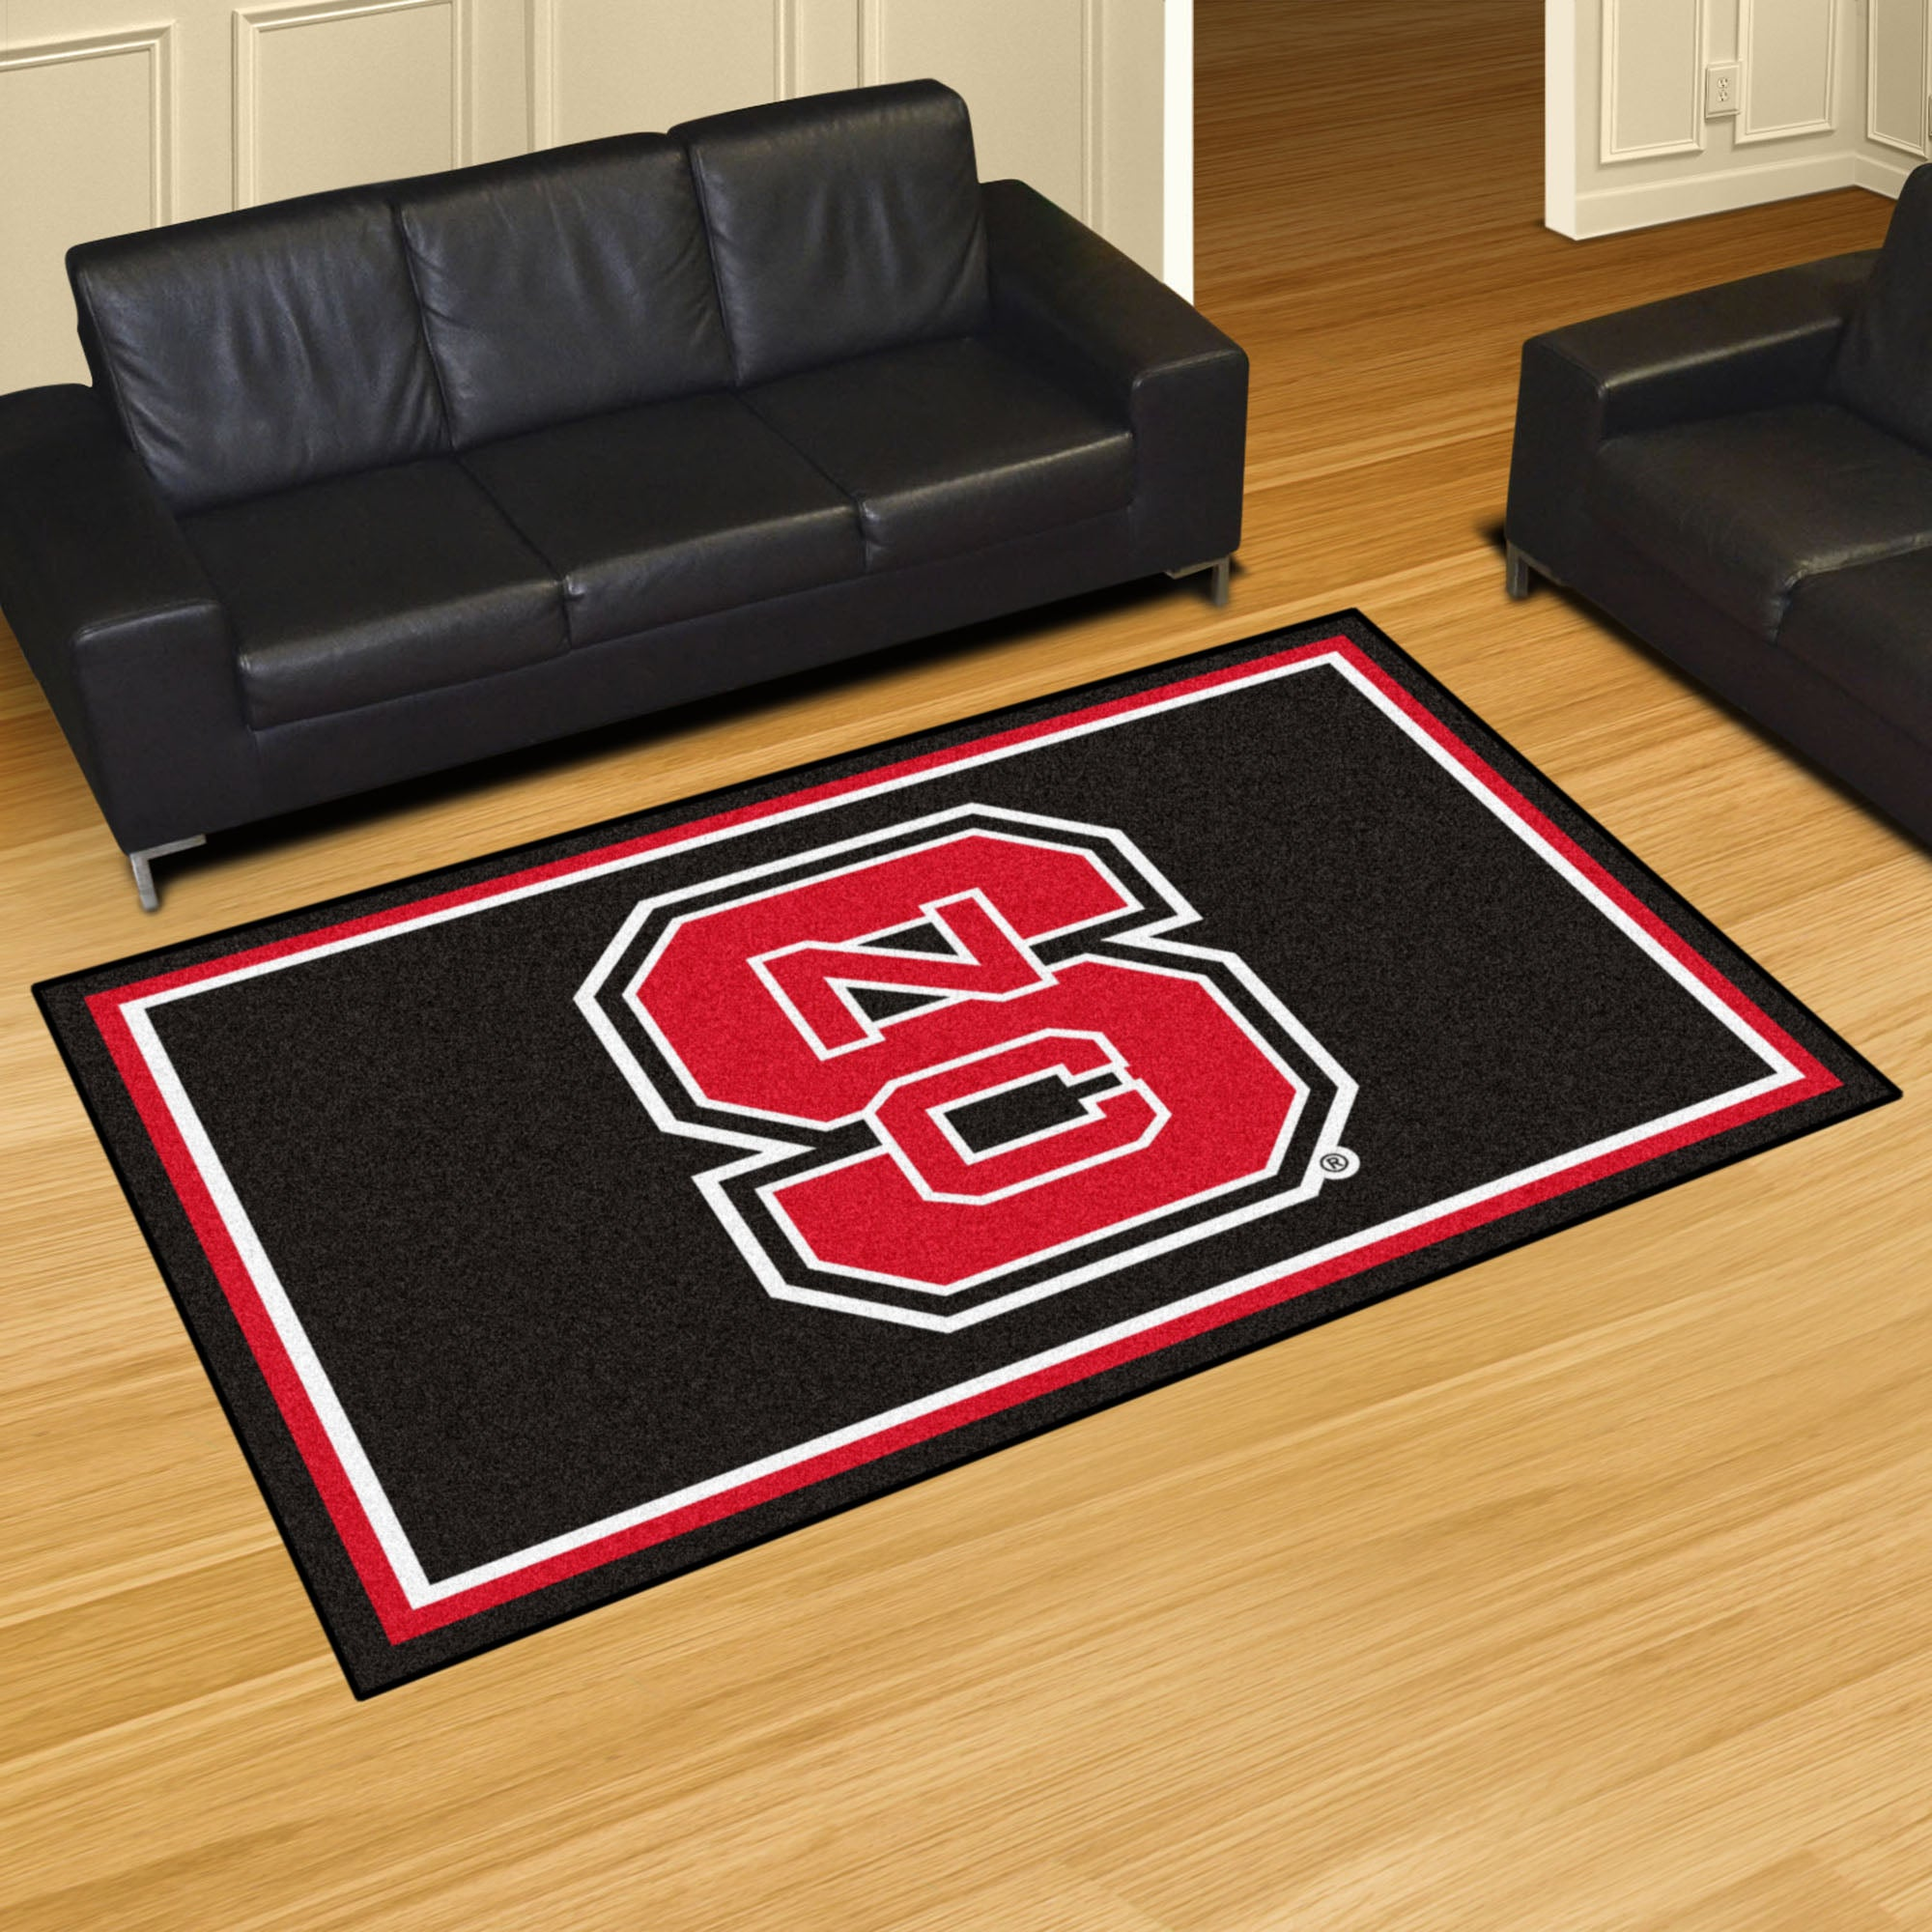 North Carolina State University Plush Rug  College Area Rug - Fan Rugs